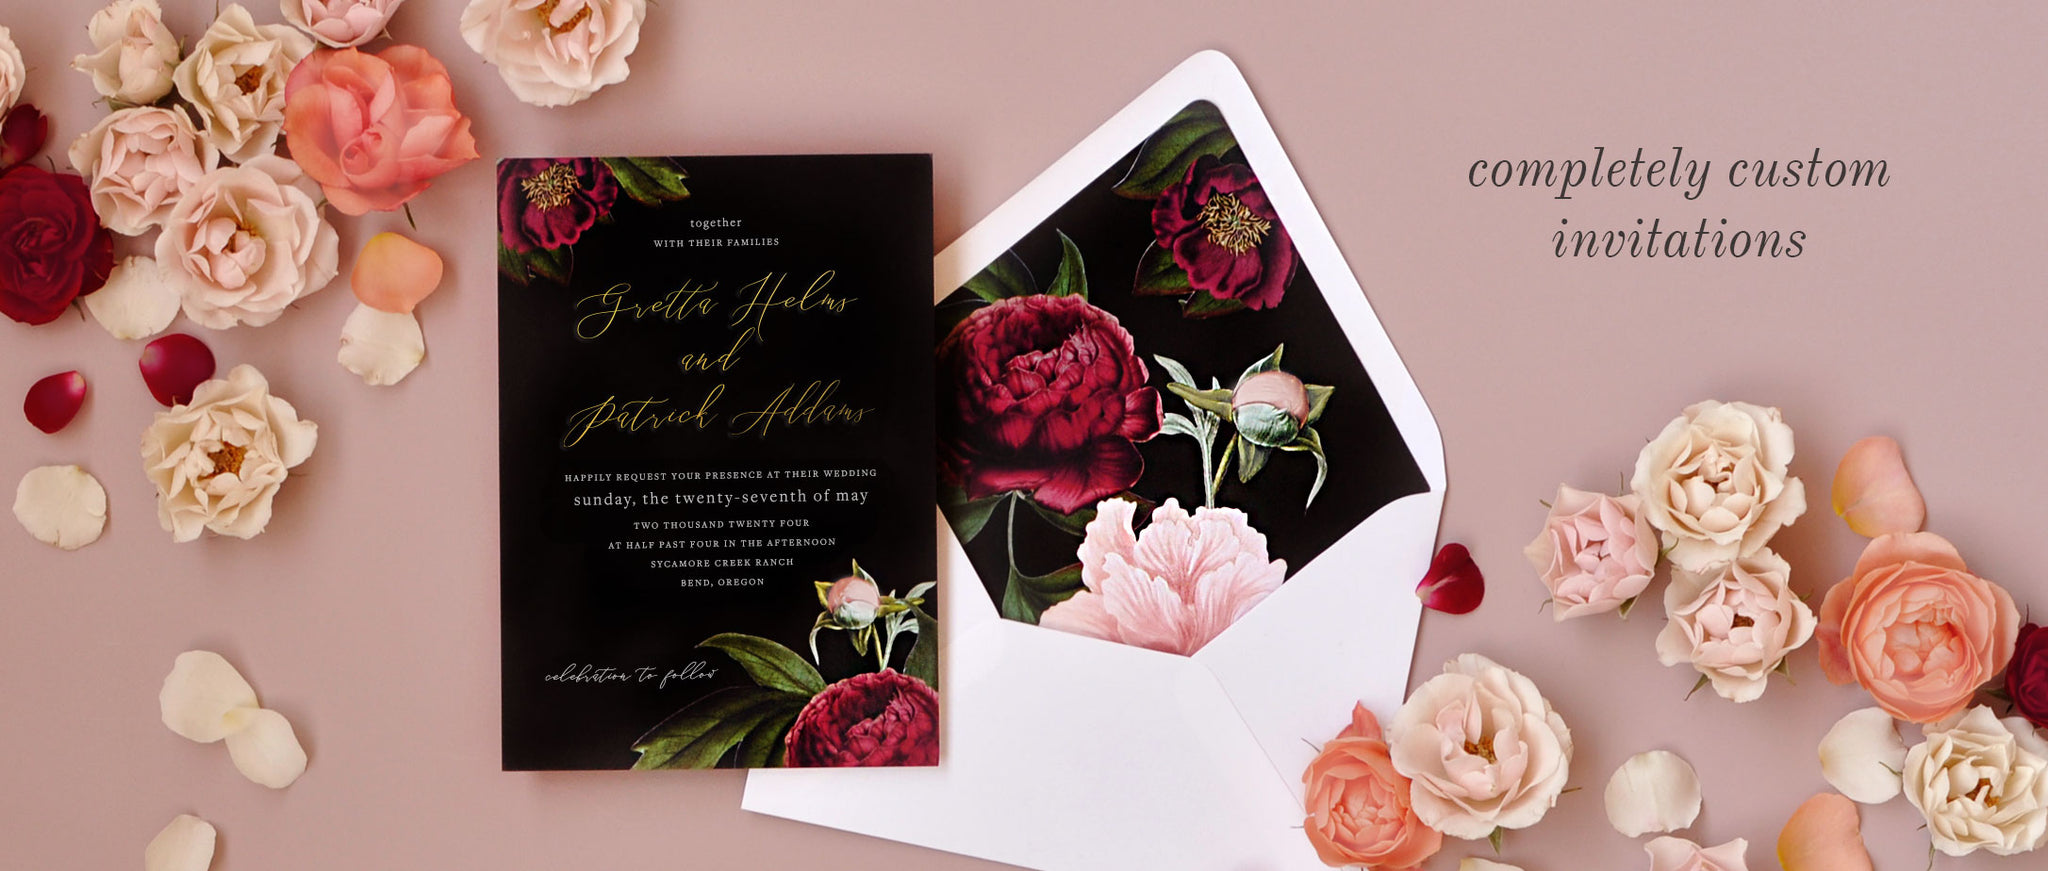 Custom Wedding Invitations and Stationery – Smitten on Paper